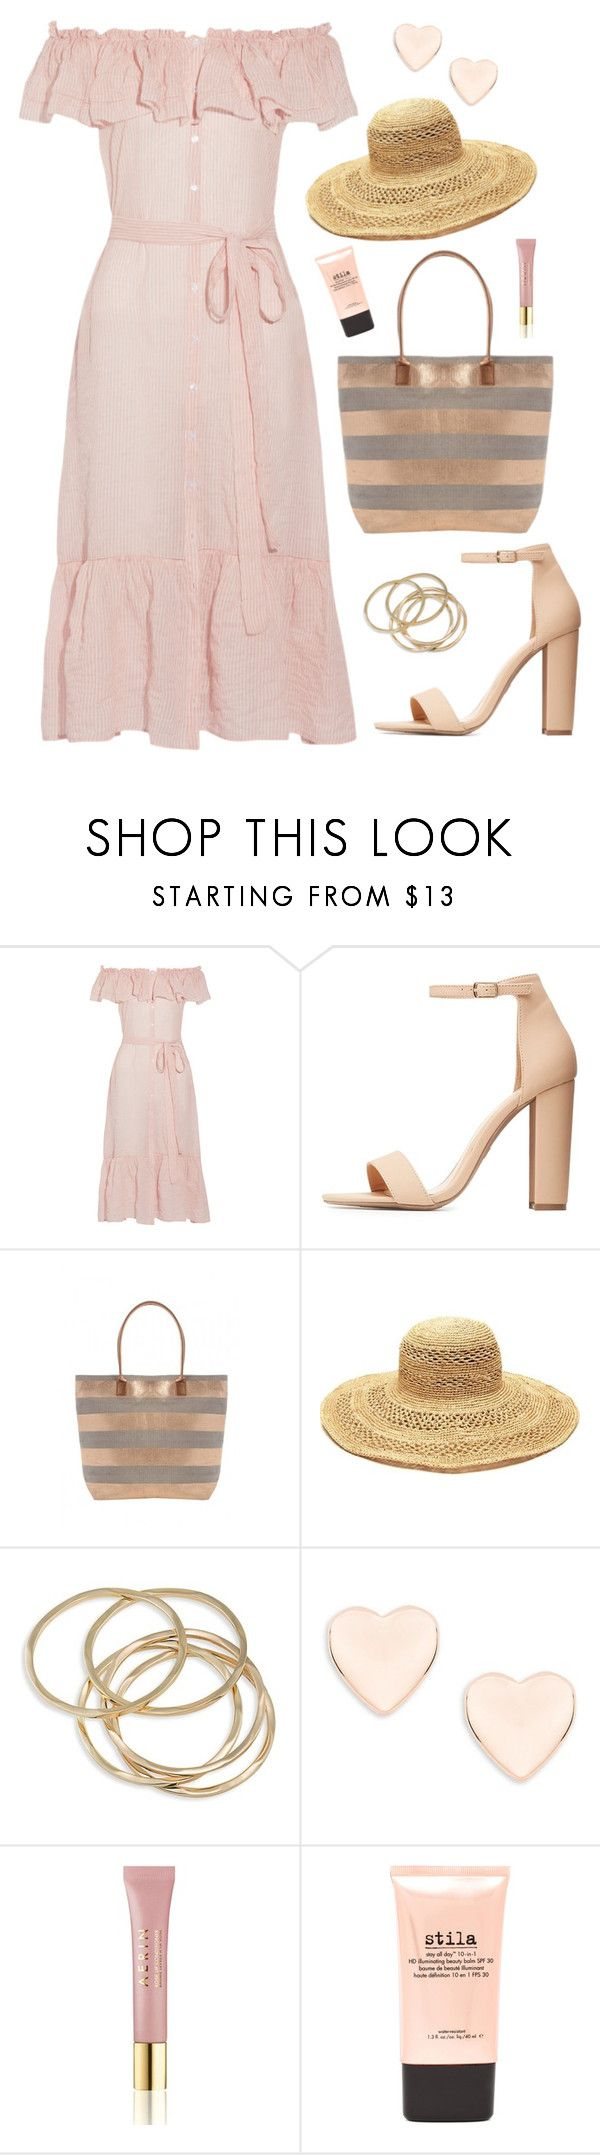 """Suggested #3"" by vale14m on Polyvore featuring Lisa Marie Fernandez, Charlotte Russe, Mar y Sol, ABS by Allen Schwartz, Ted Baker, AERIN and Stila"